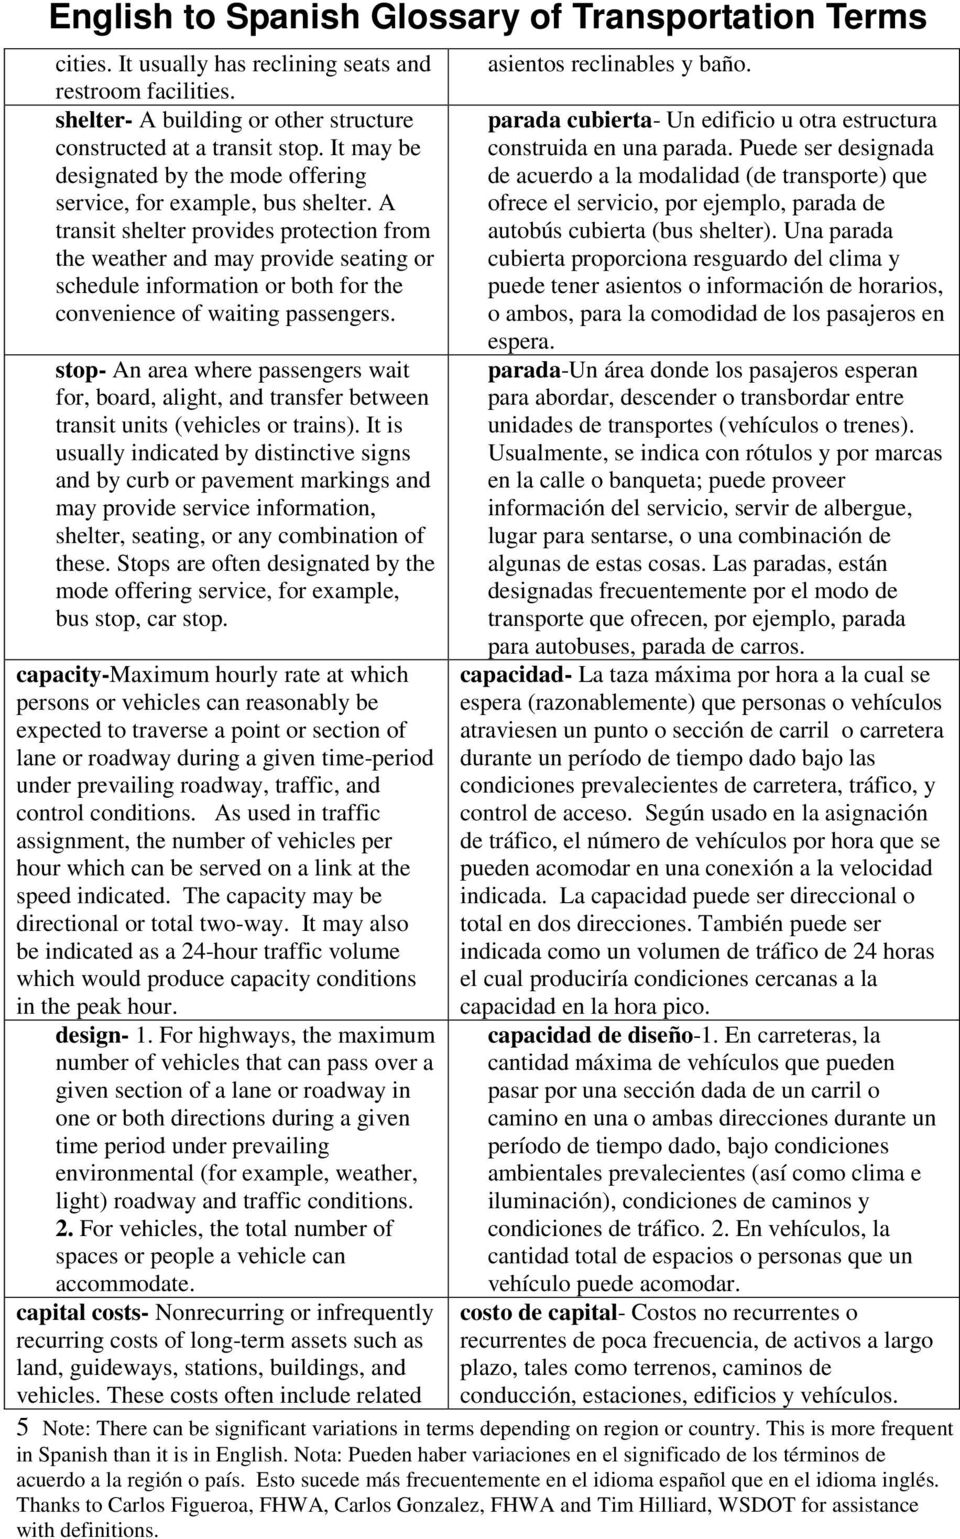 A transit shelter provides protection from the weather and may provide seating or schedule information or both for the convenience of waiting passengers.